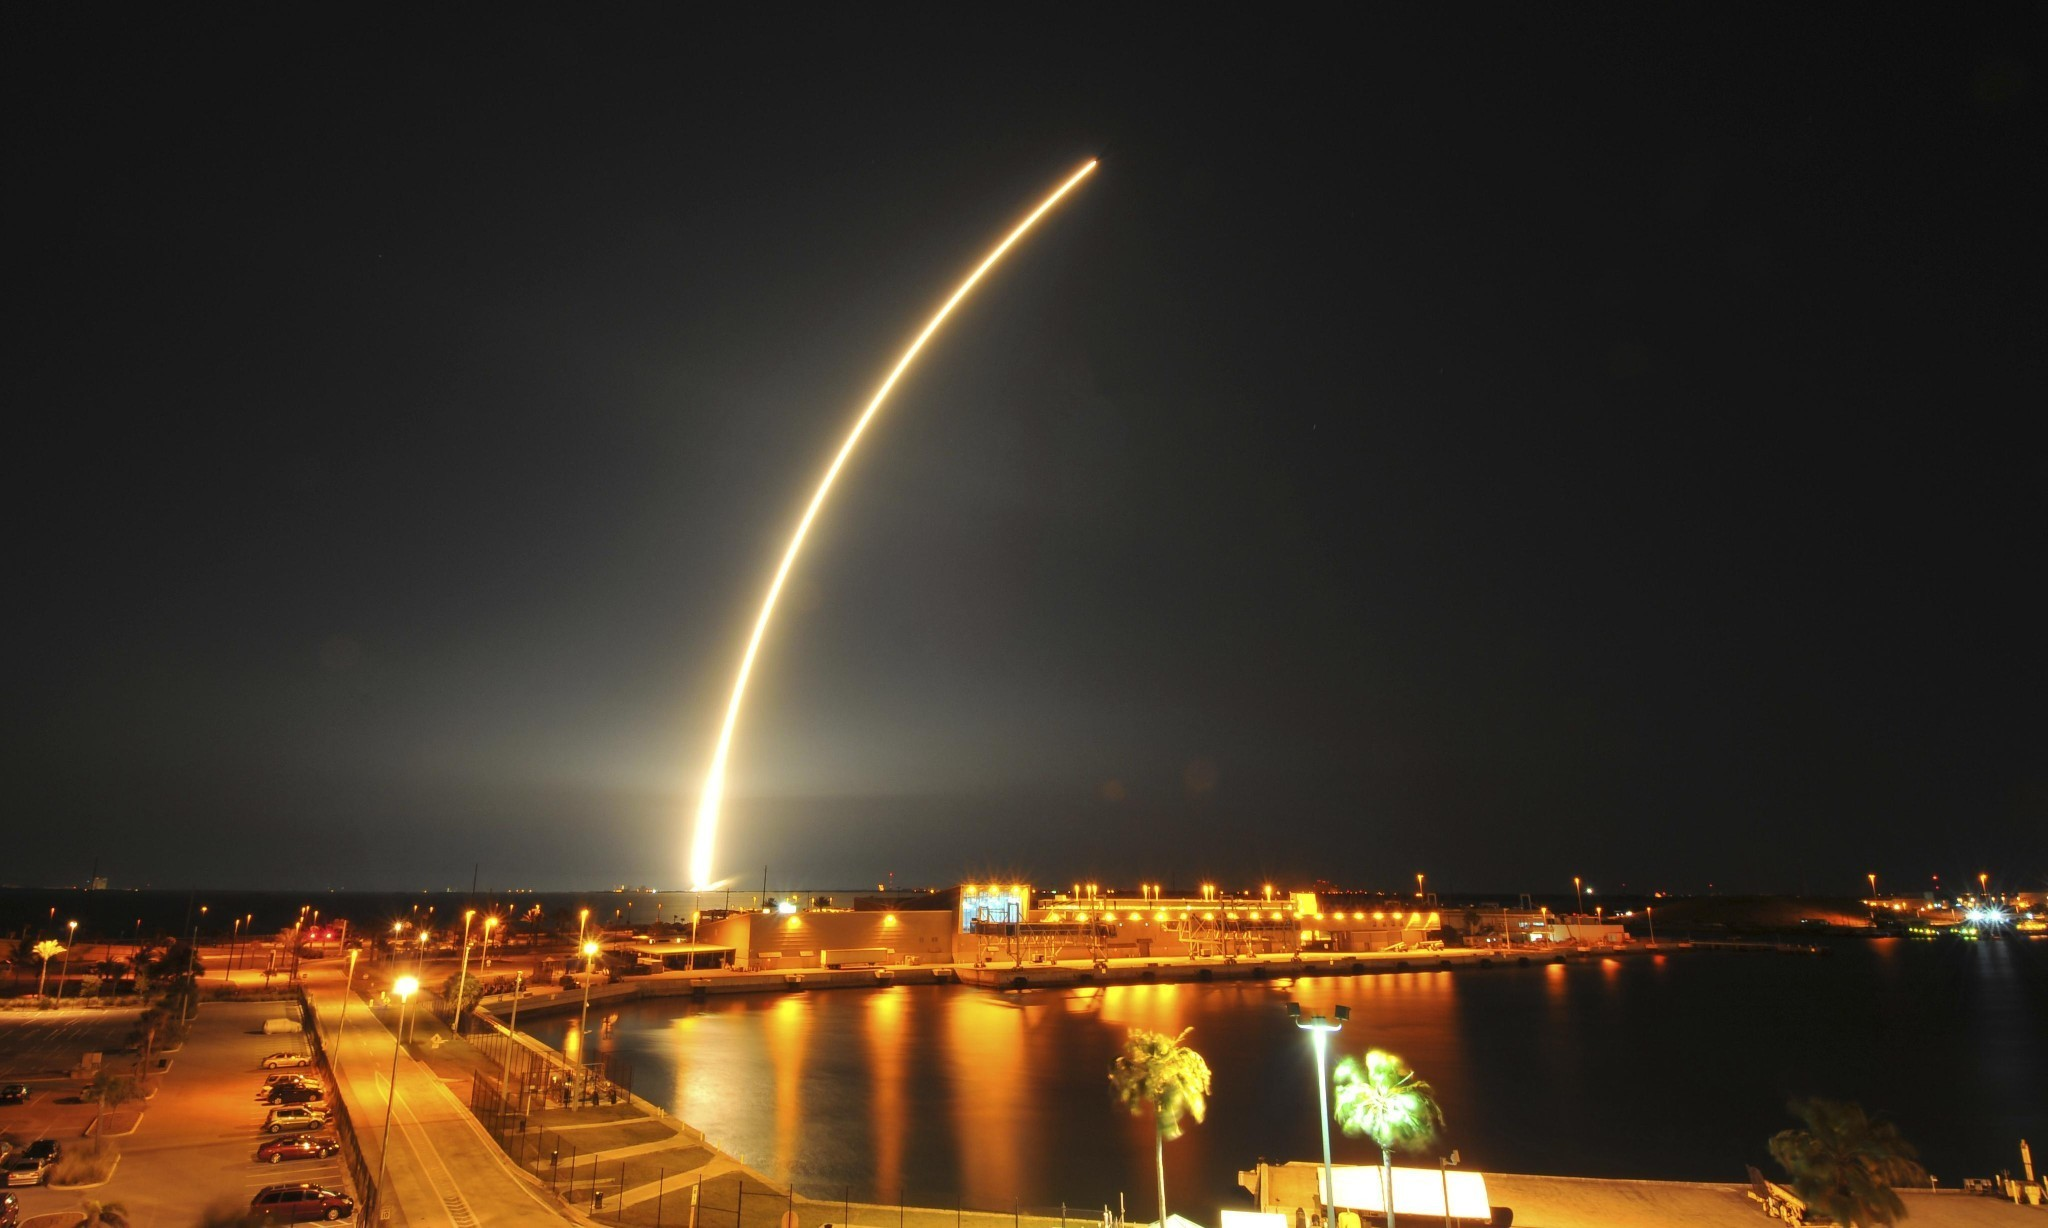 Elon Musk's SpaceX lands reusable rocket on barge for second time